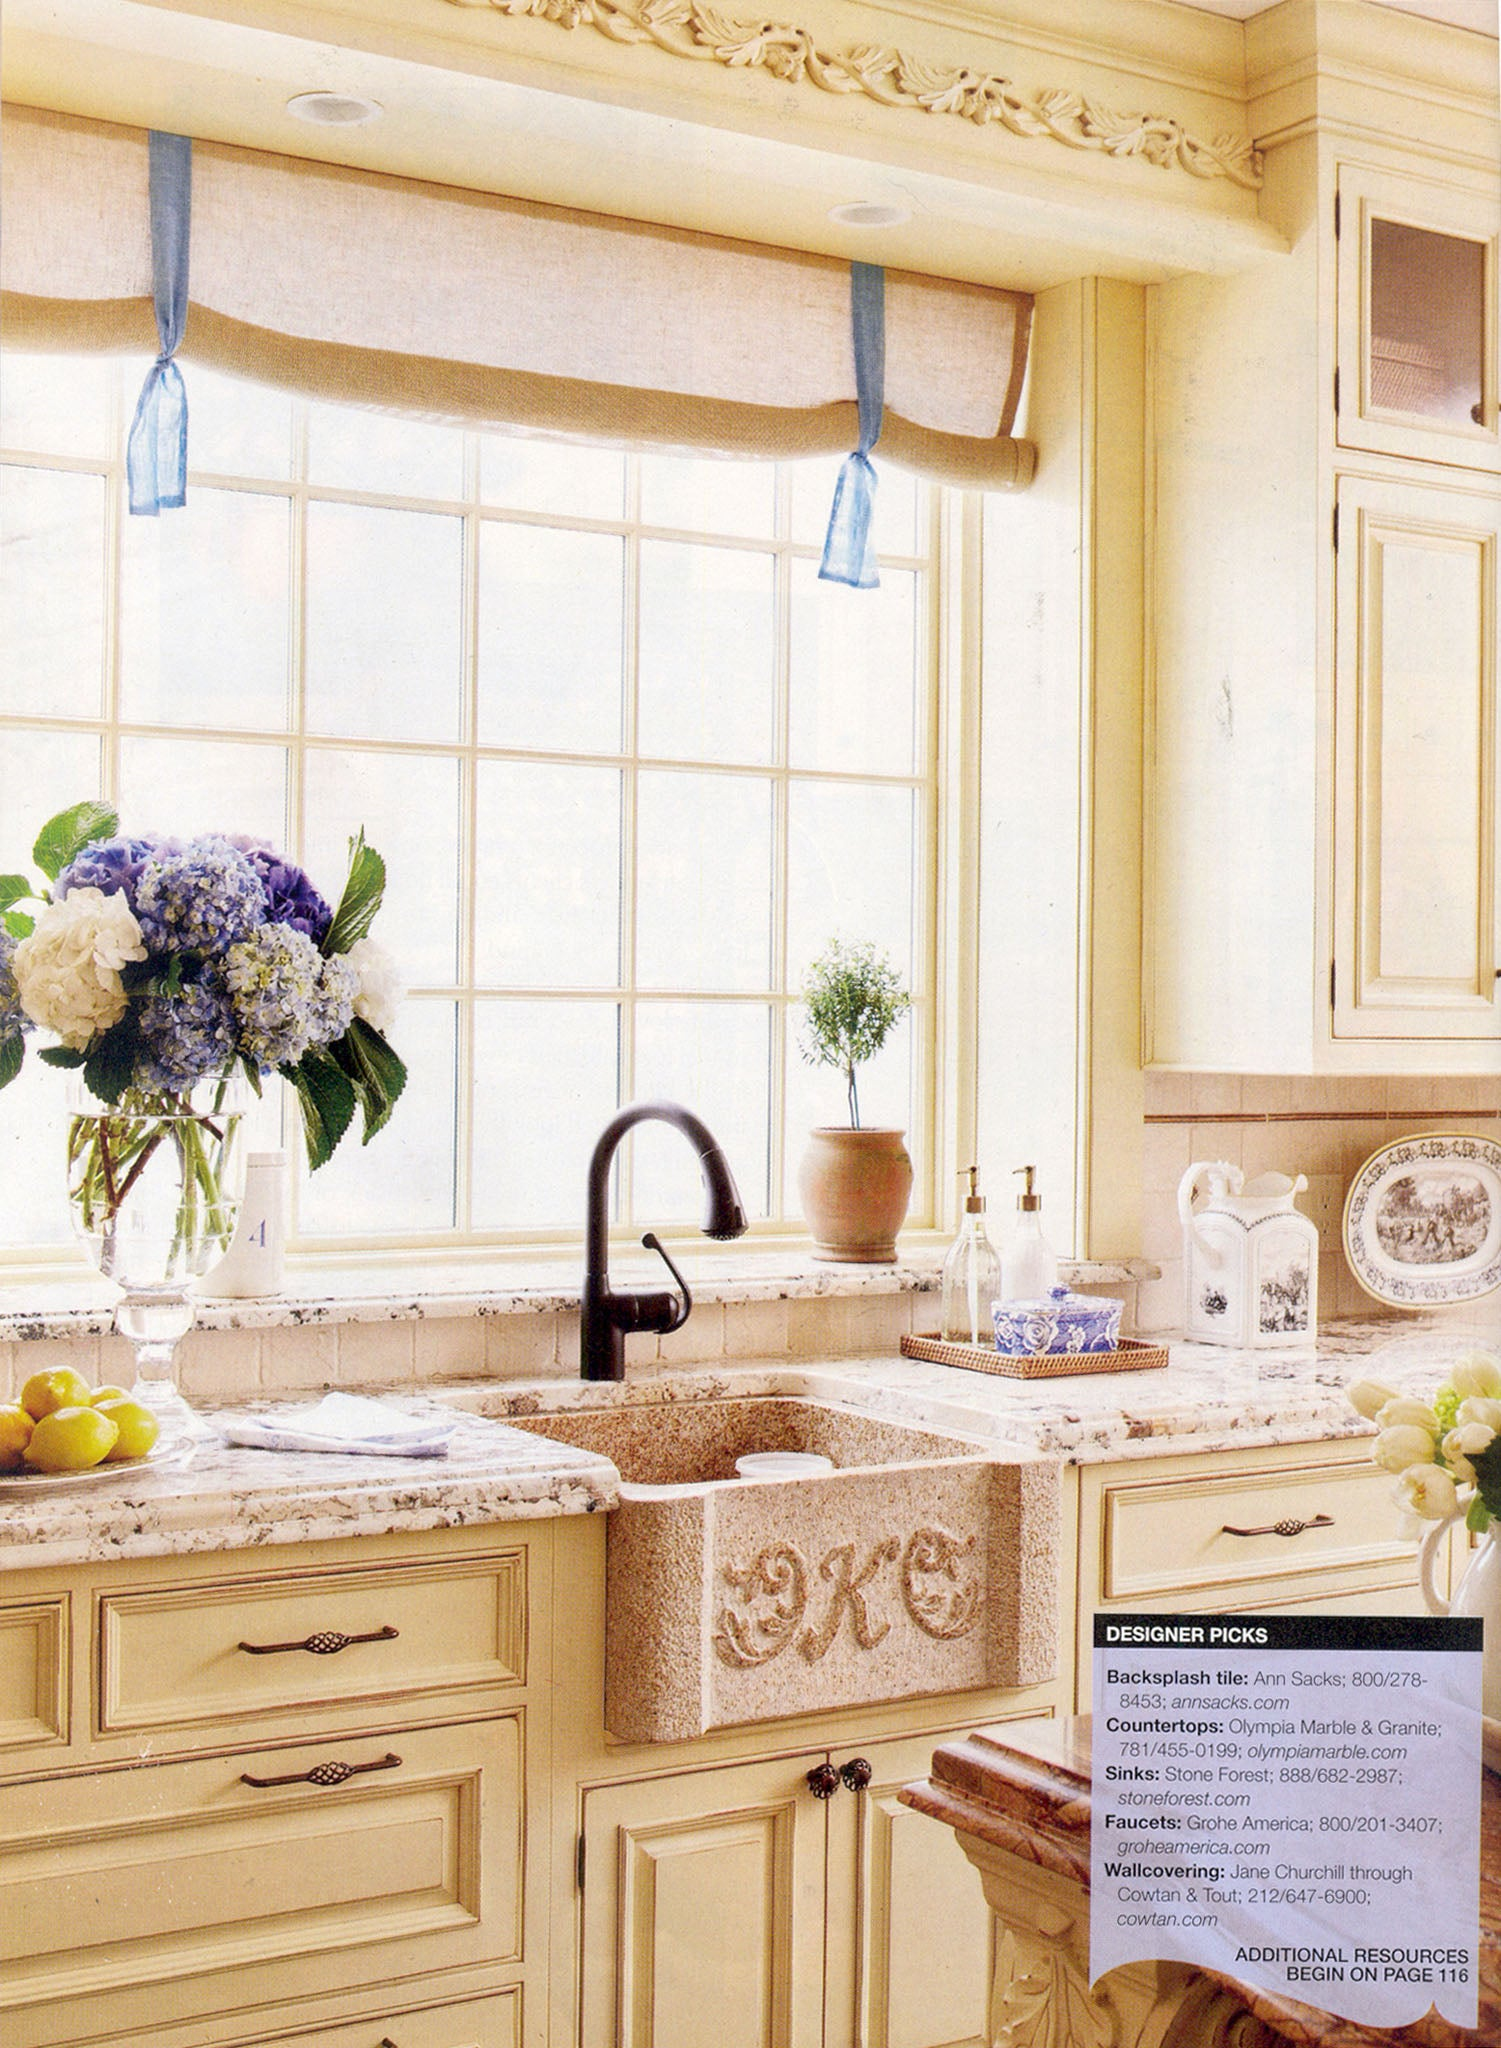 Homes And Gardens Kitchens Better Homes And Gardens Beautiful Kitchens Summer 2010 Stone